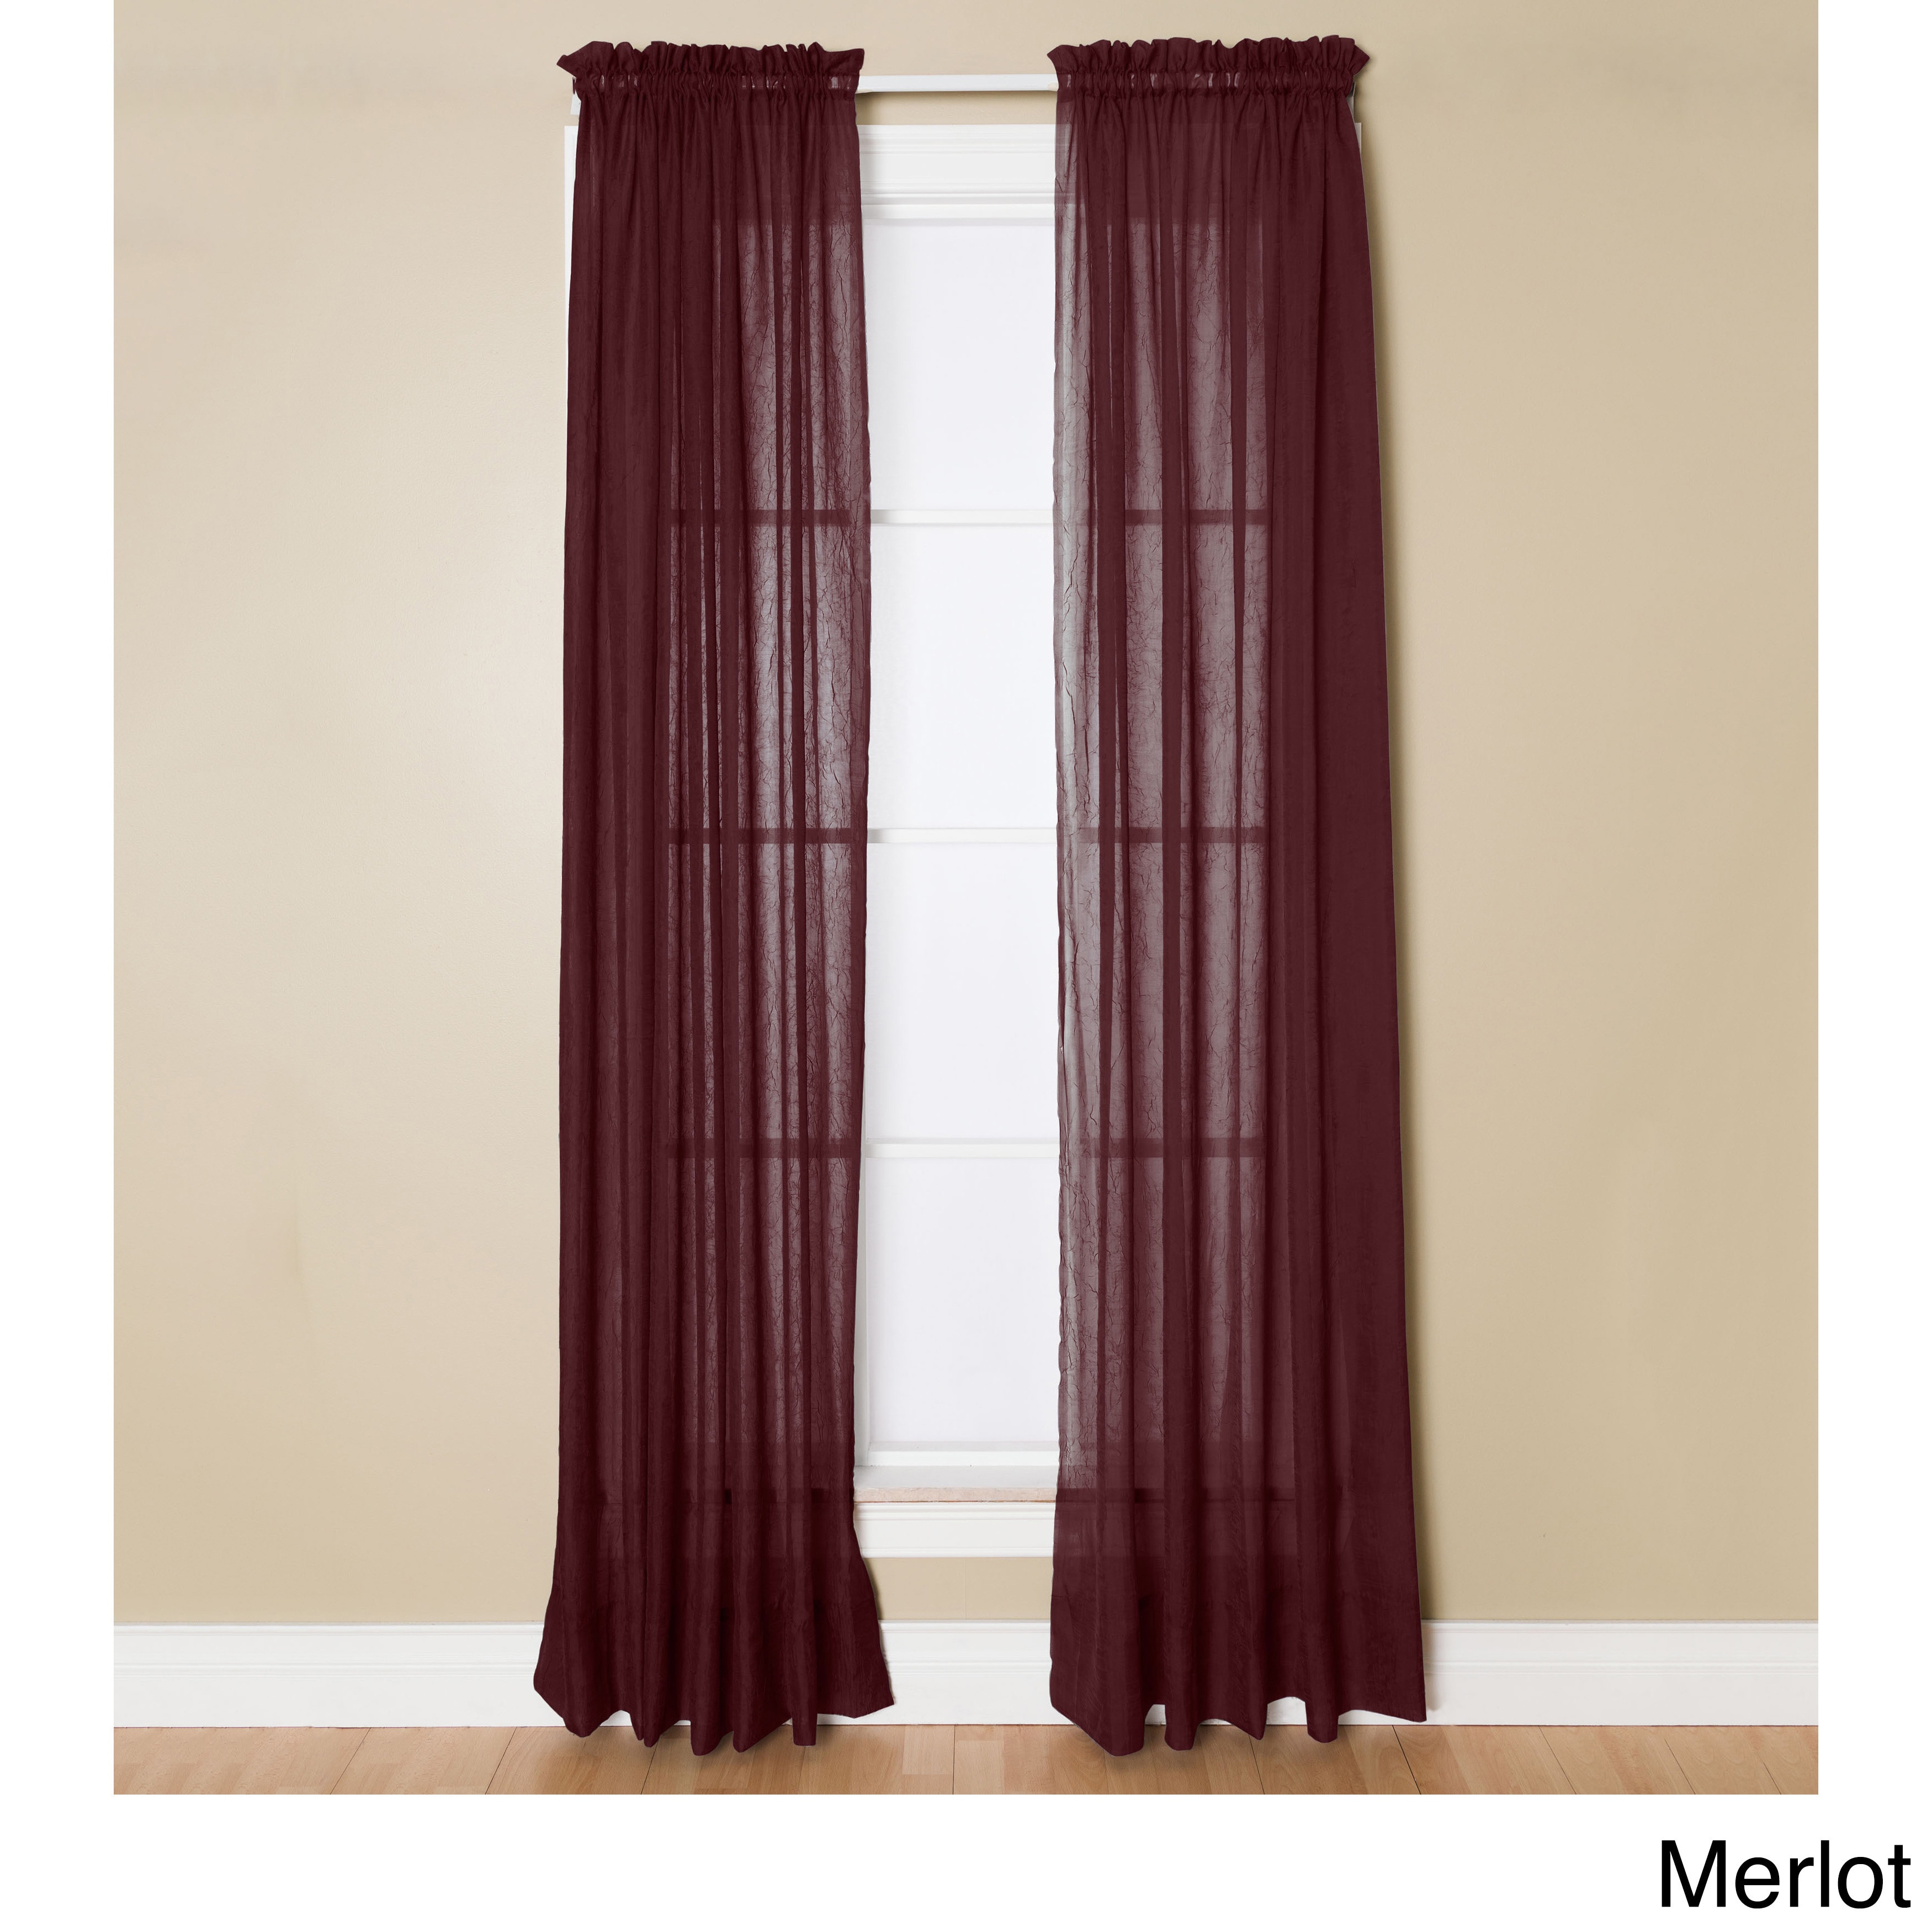 blackout size home aurora to curtain inch regard with insulated curtains thermal top tab full image